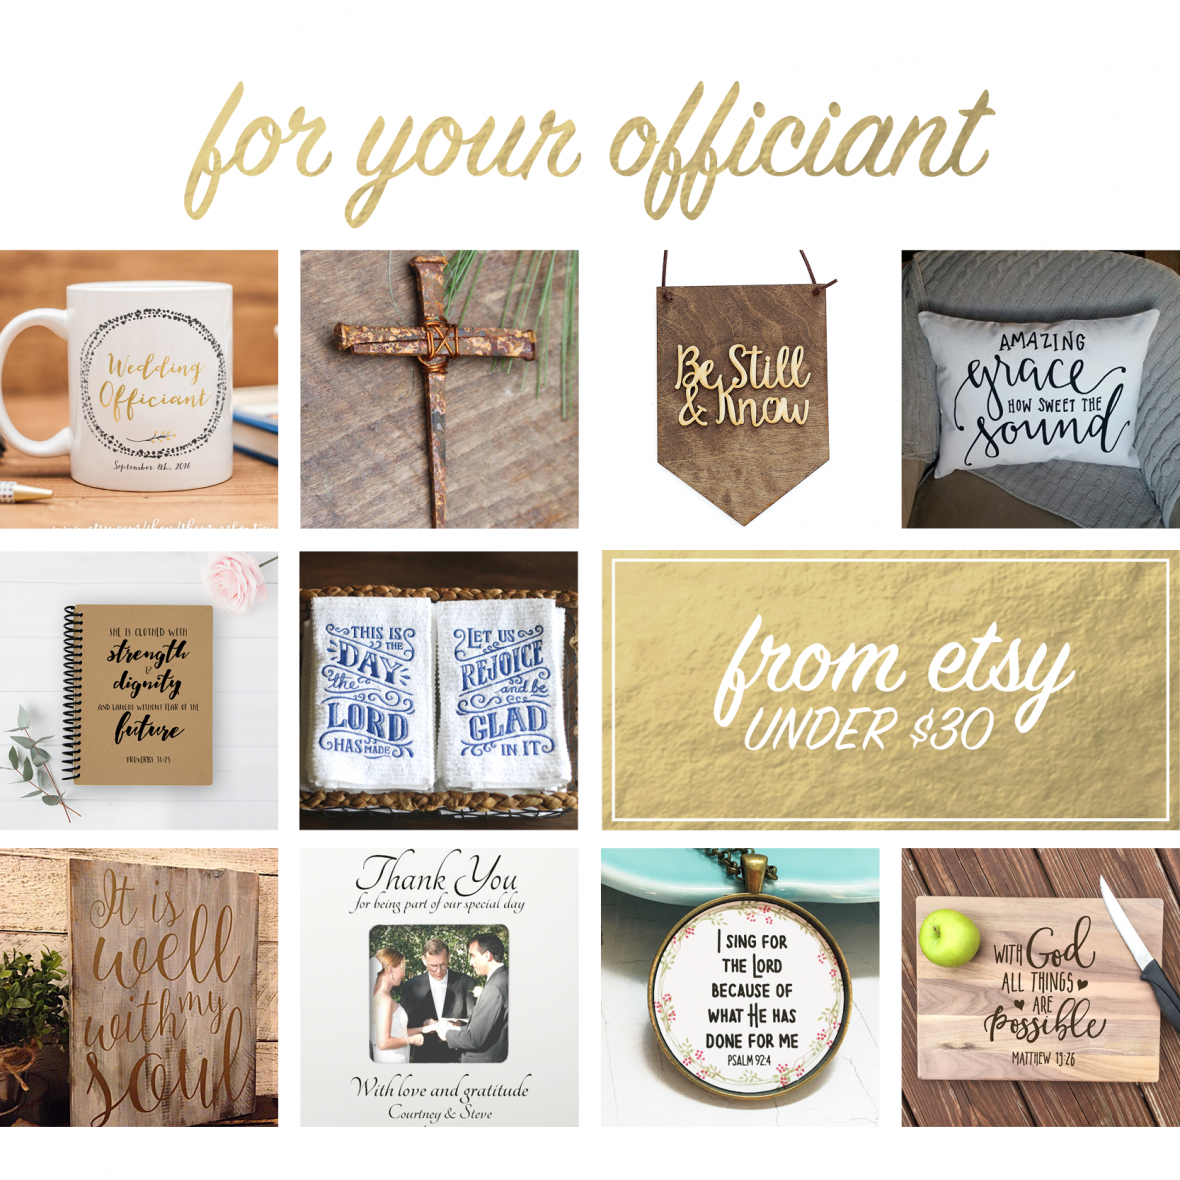 Handmade gifts for officiants from Etsy